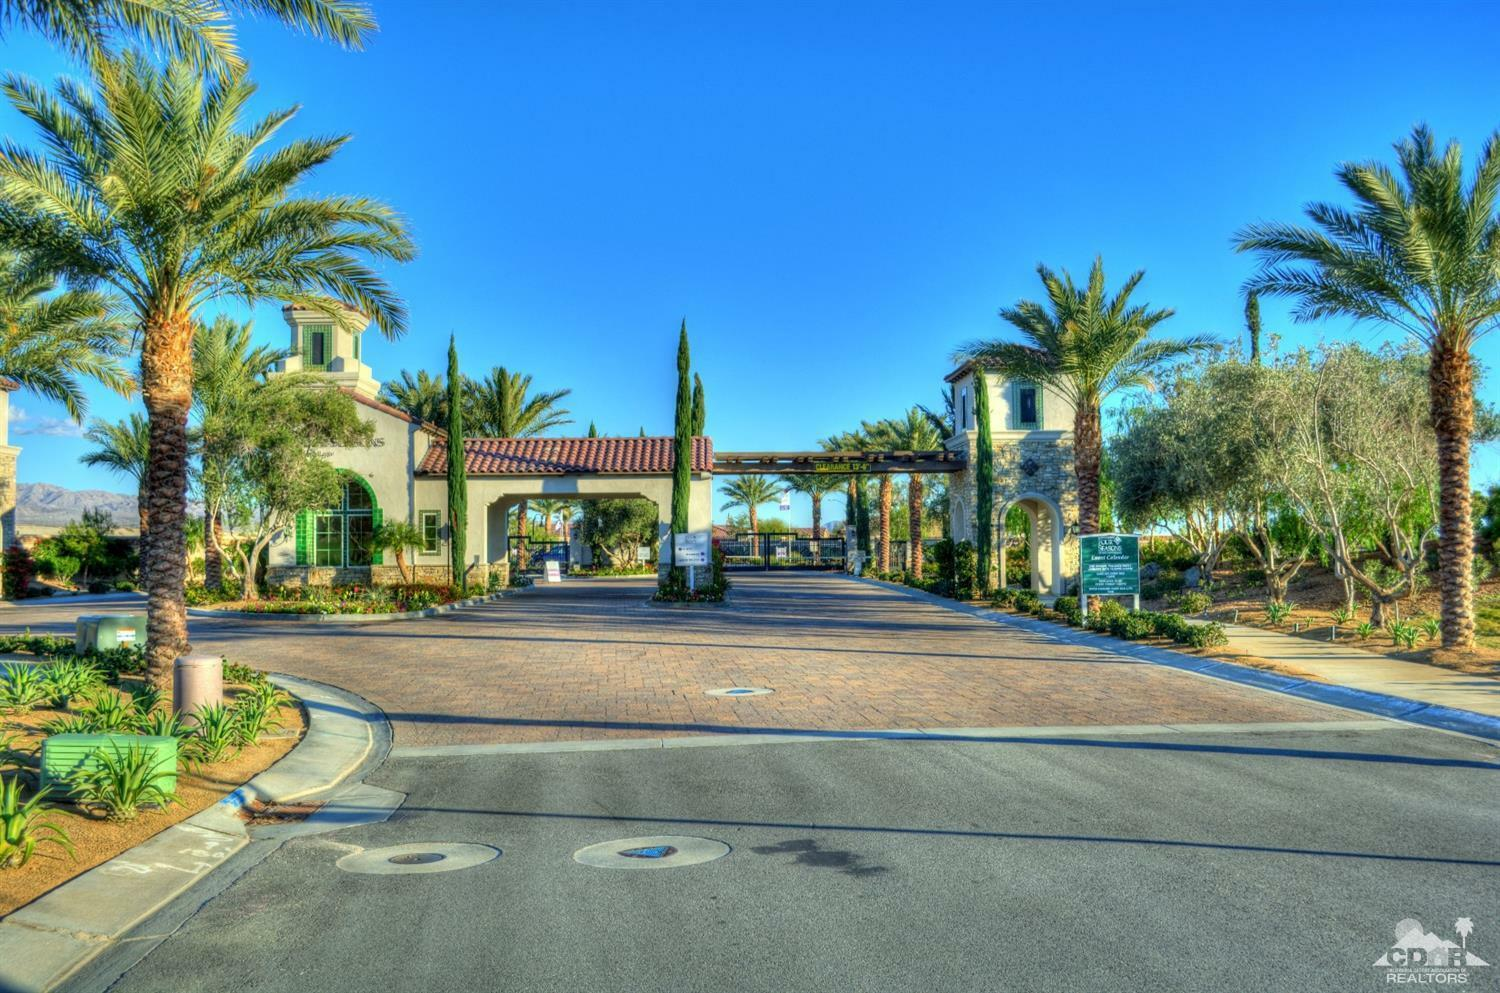 42830 Brienno Court, Indio, CA - USA (photo 1)